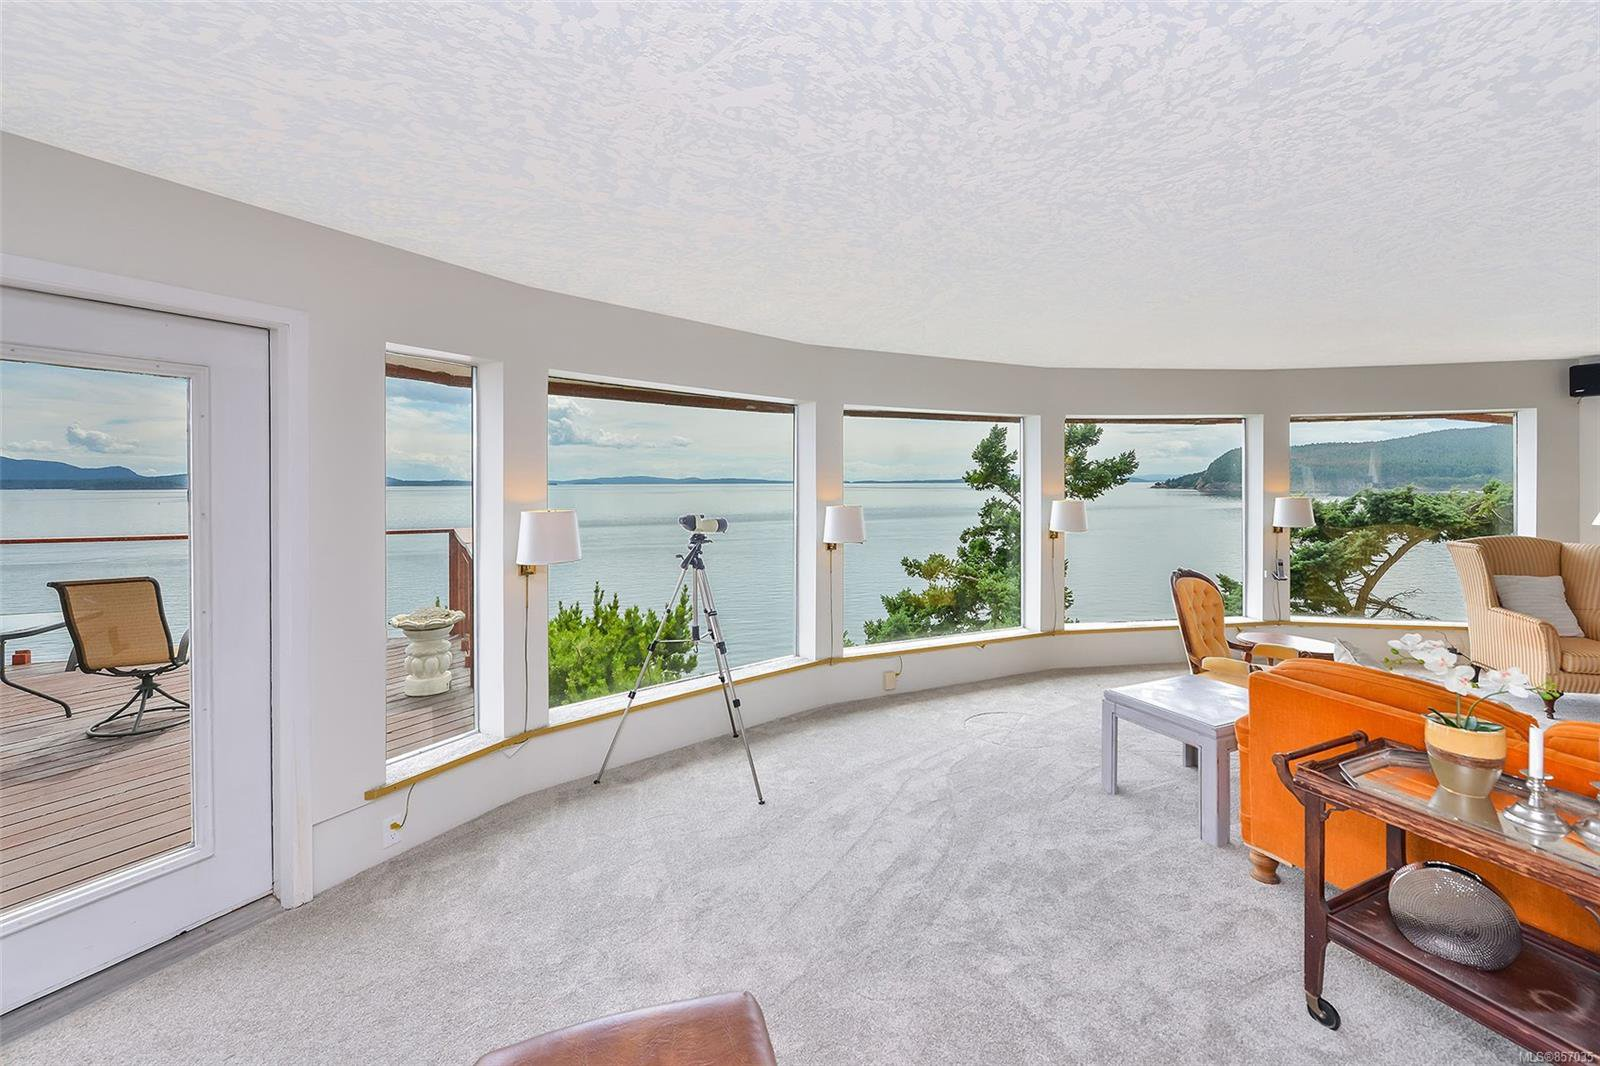 Photo 7: Photos: 172 Cliffside Rd in : GI Saturna Island House for sale (Gulf Islands)  : MLS®# 857035